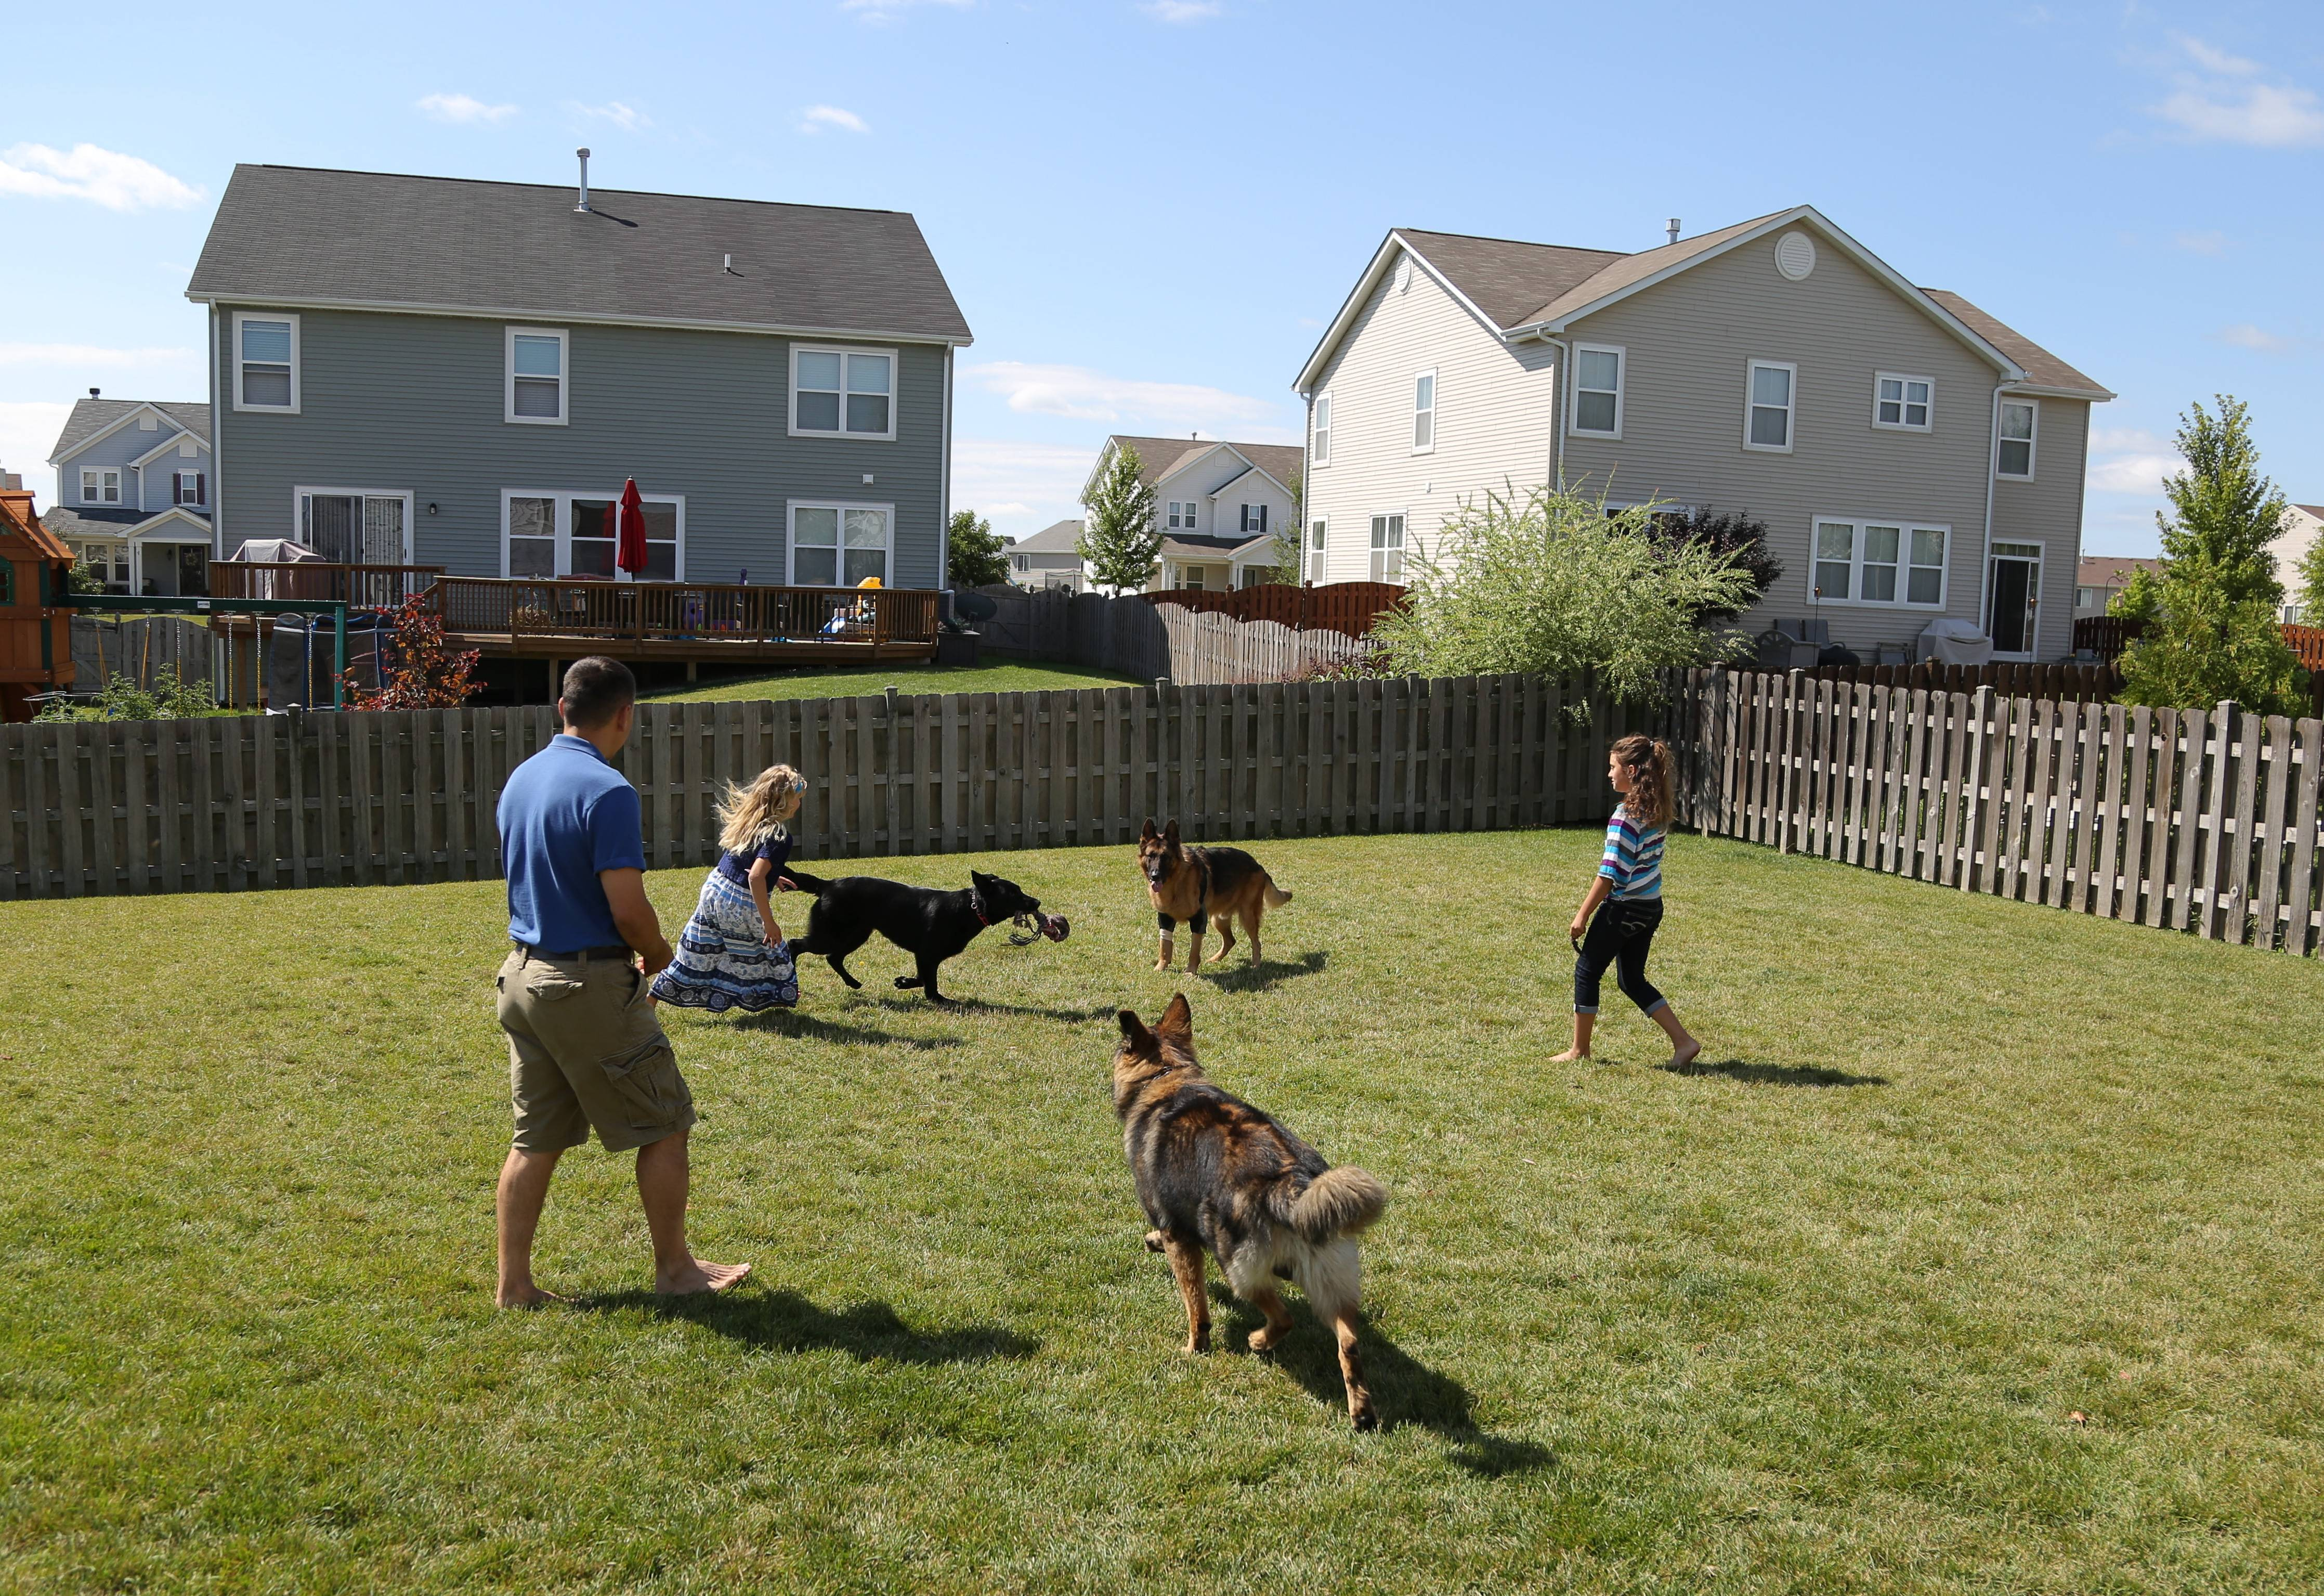 Gurnee Police Officer Phil Mazur and his daughters Kailey, 10, right, and Allison, 8, play in their backyard with retired police dog Shane, active dog Hunter and puppy, Talia, at their home in Kenosha, Wisconsin.